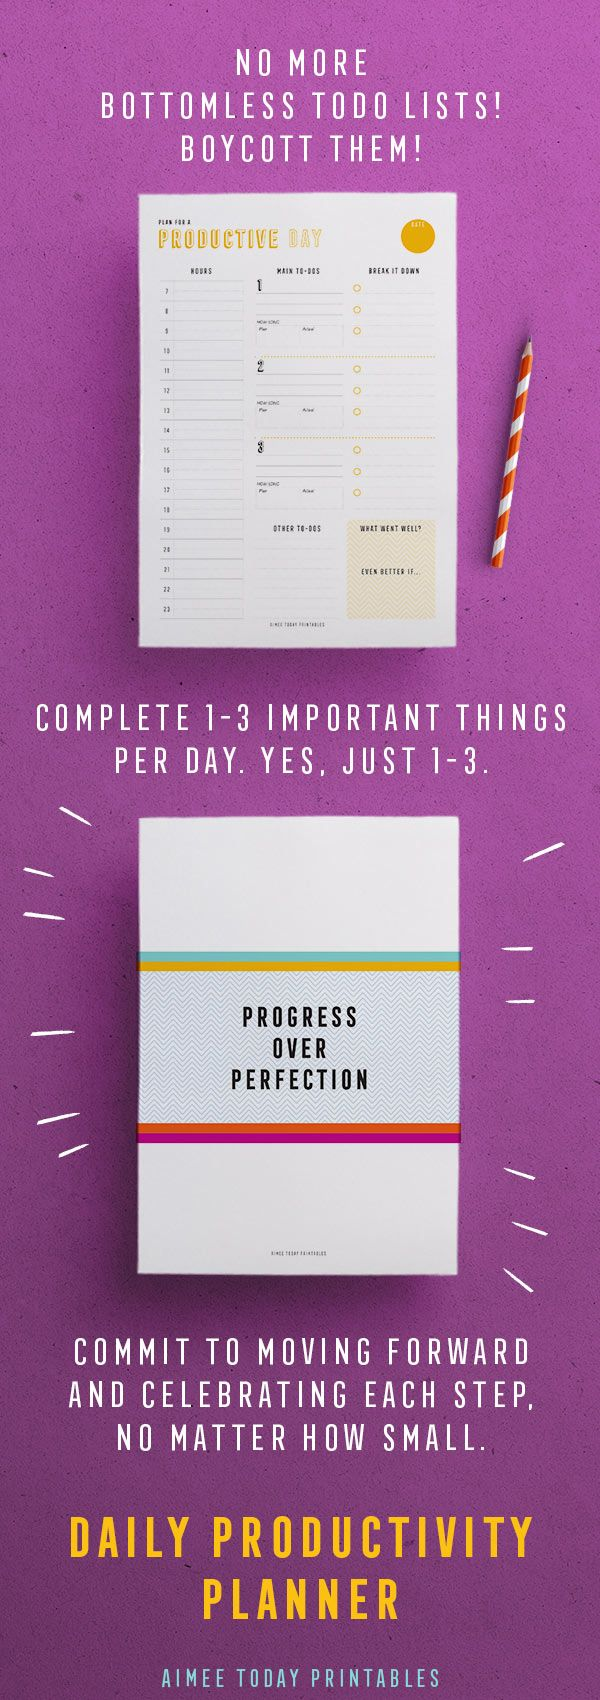 Progress over perfection! Yes! Daily productivity planner printable to help you do the stuff that matters and move forward with your projects. Less is more!